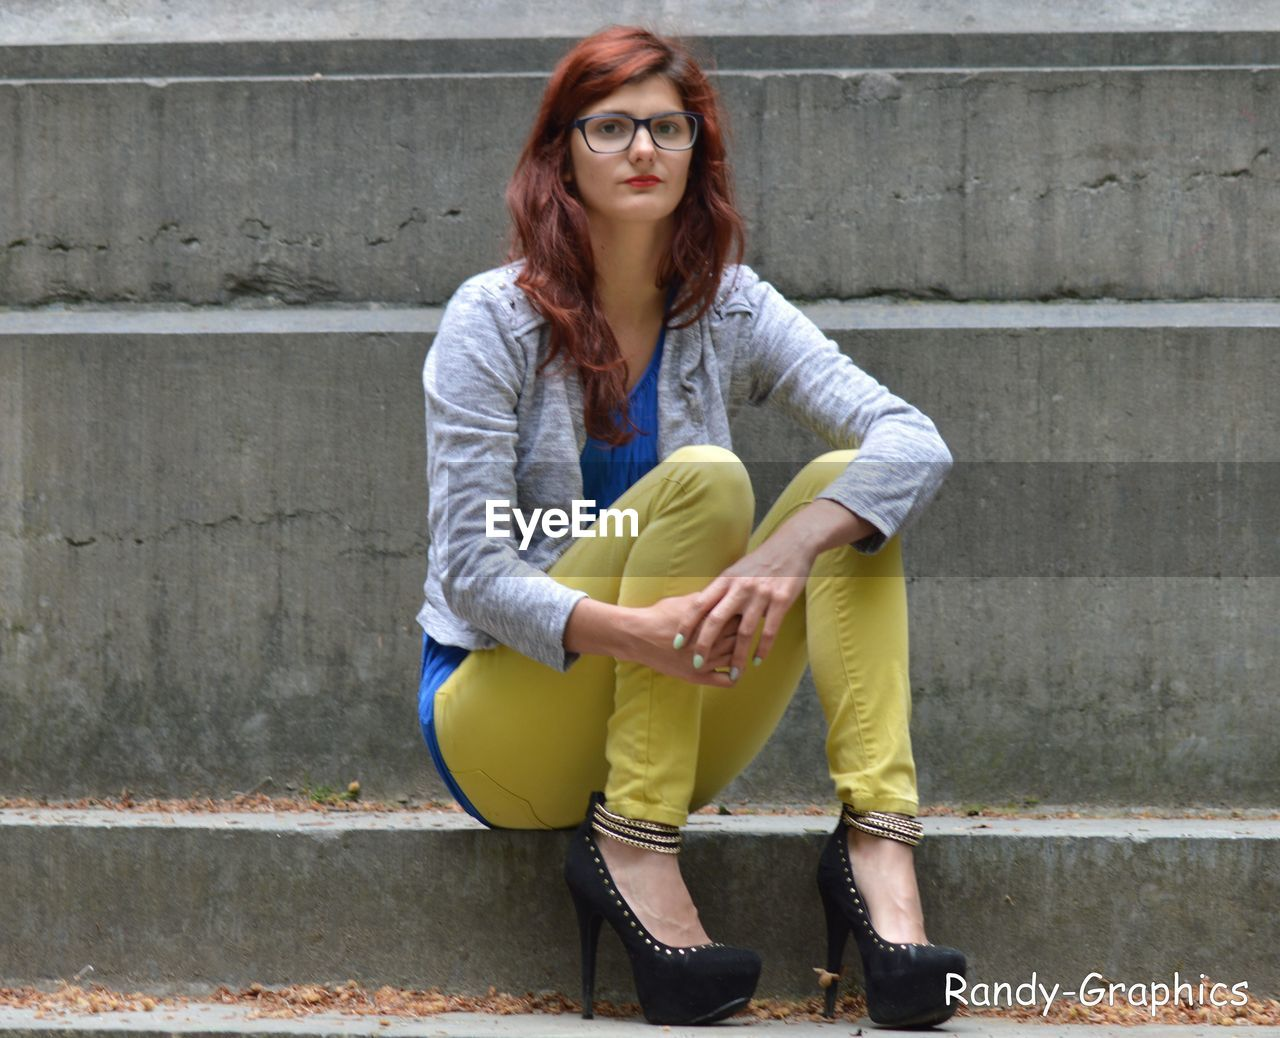 young adult, young women, eyeglasses, one person, sunglasses, fashion, casual clothing, redhead, lifestyles, portrait, full length, real people, leisure activity, looking at camera, outdoors, beautiful woman, day, eyewear, youth culture, beauty, one young woman only, adult, people